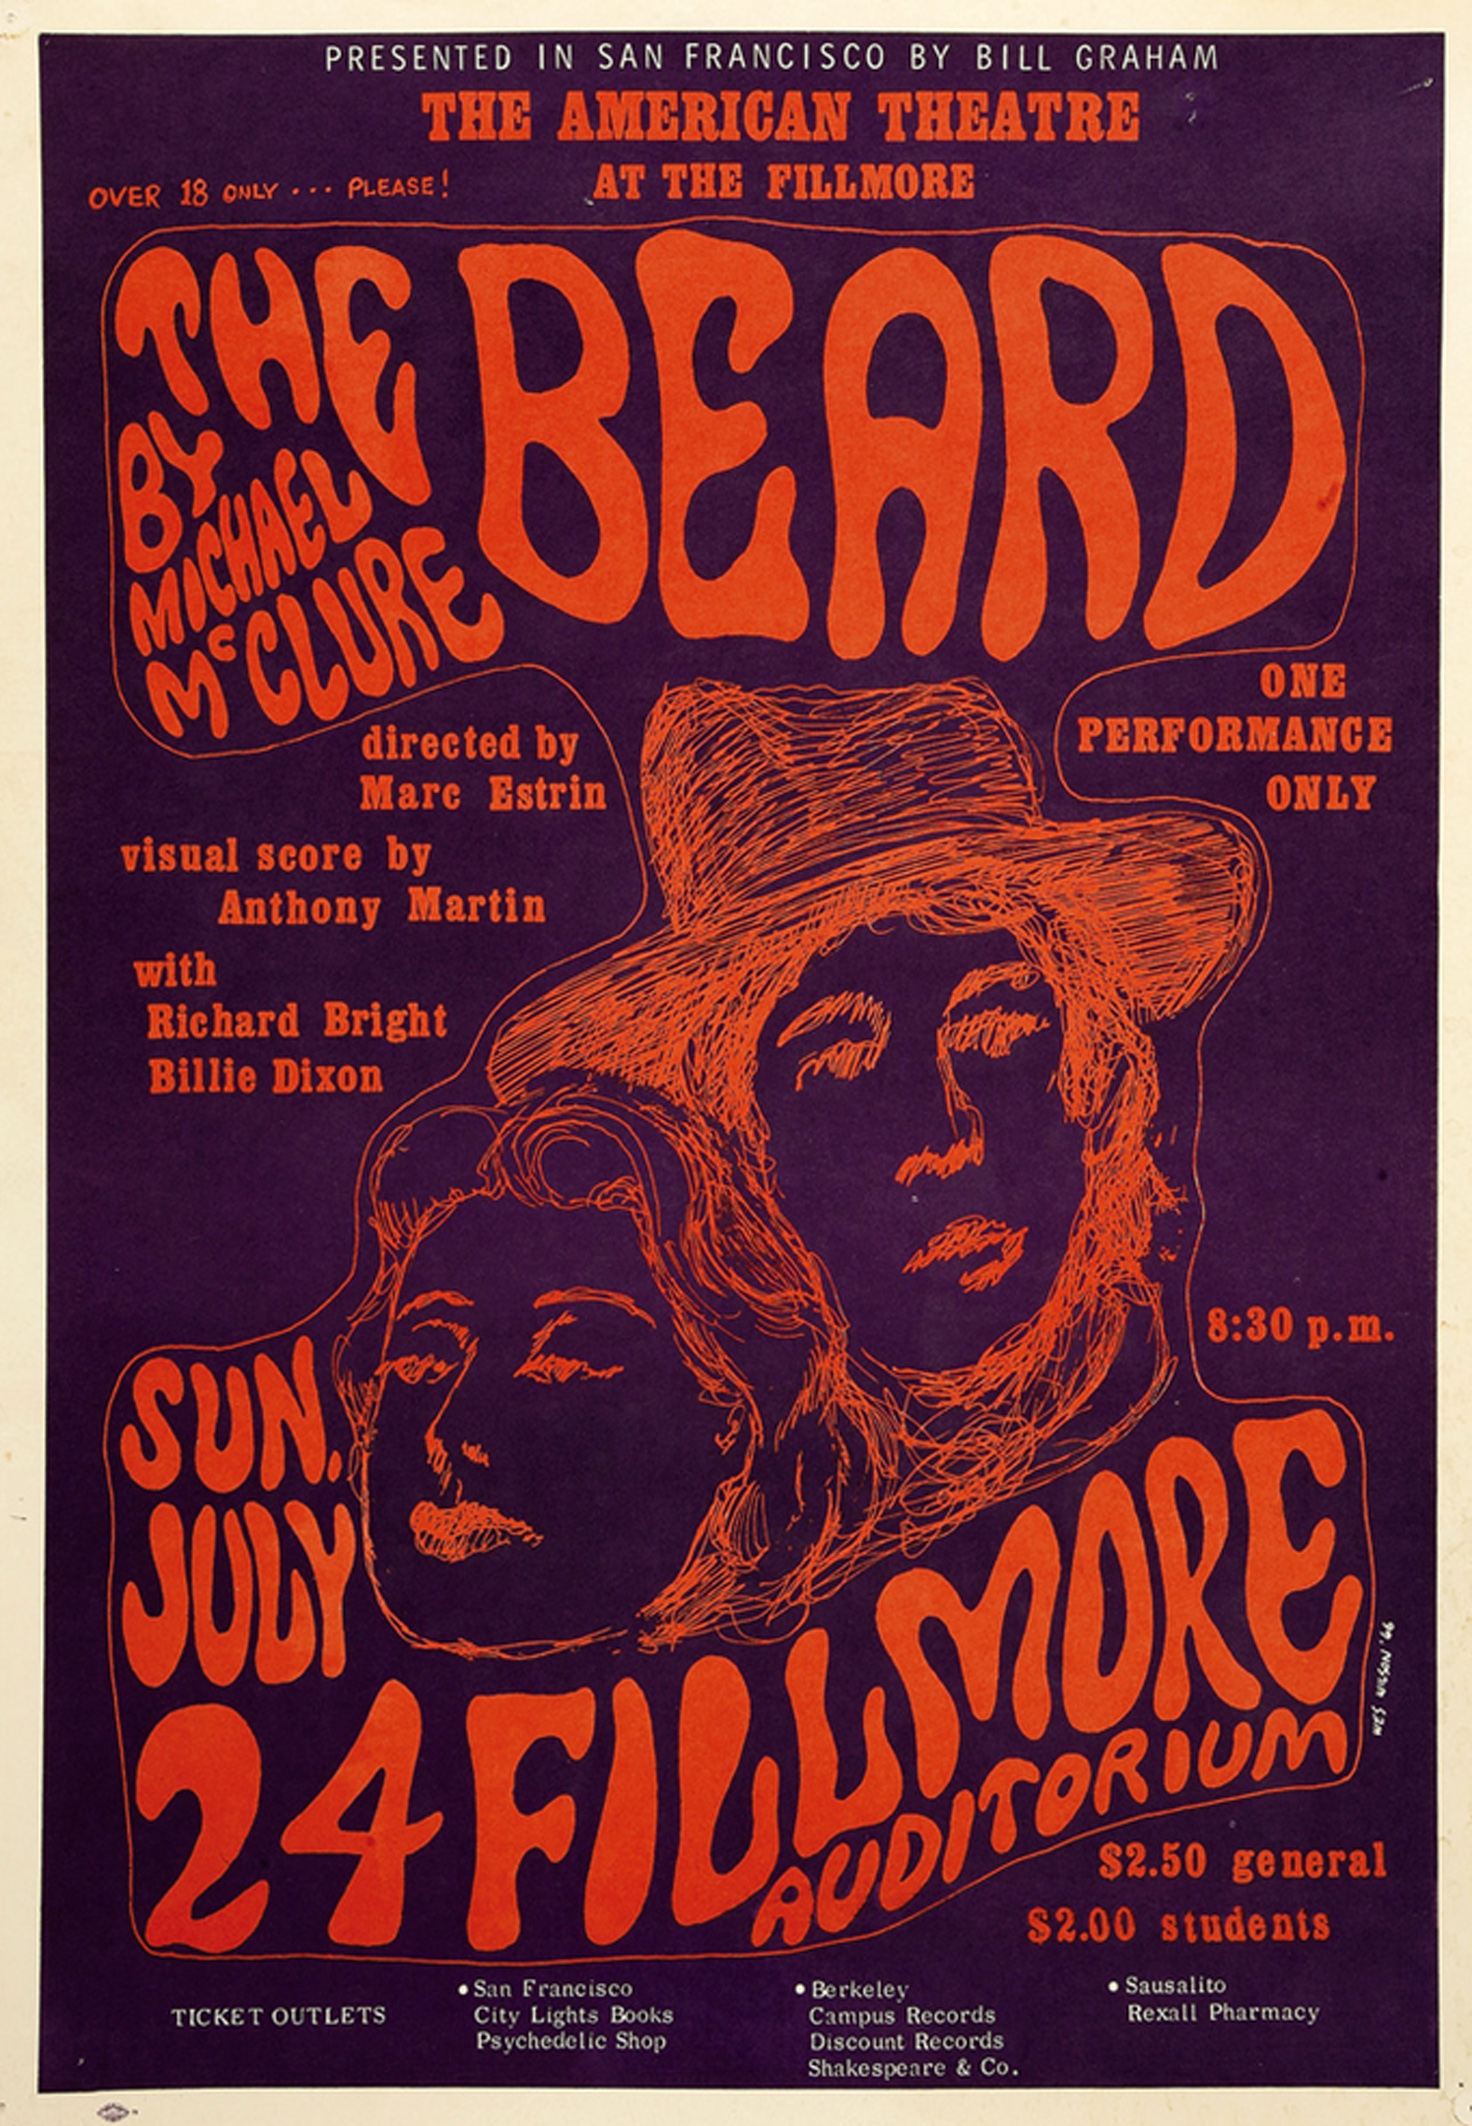 The Beard Theatrical Play Fillmore Poster 1966